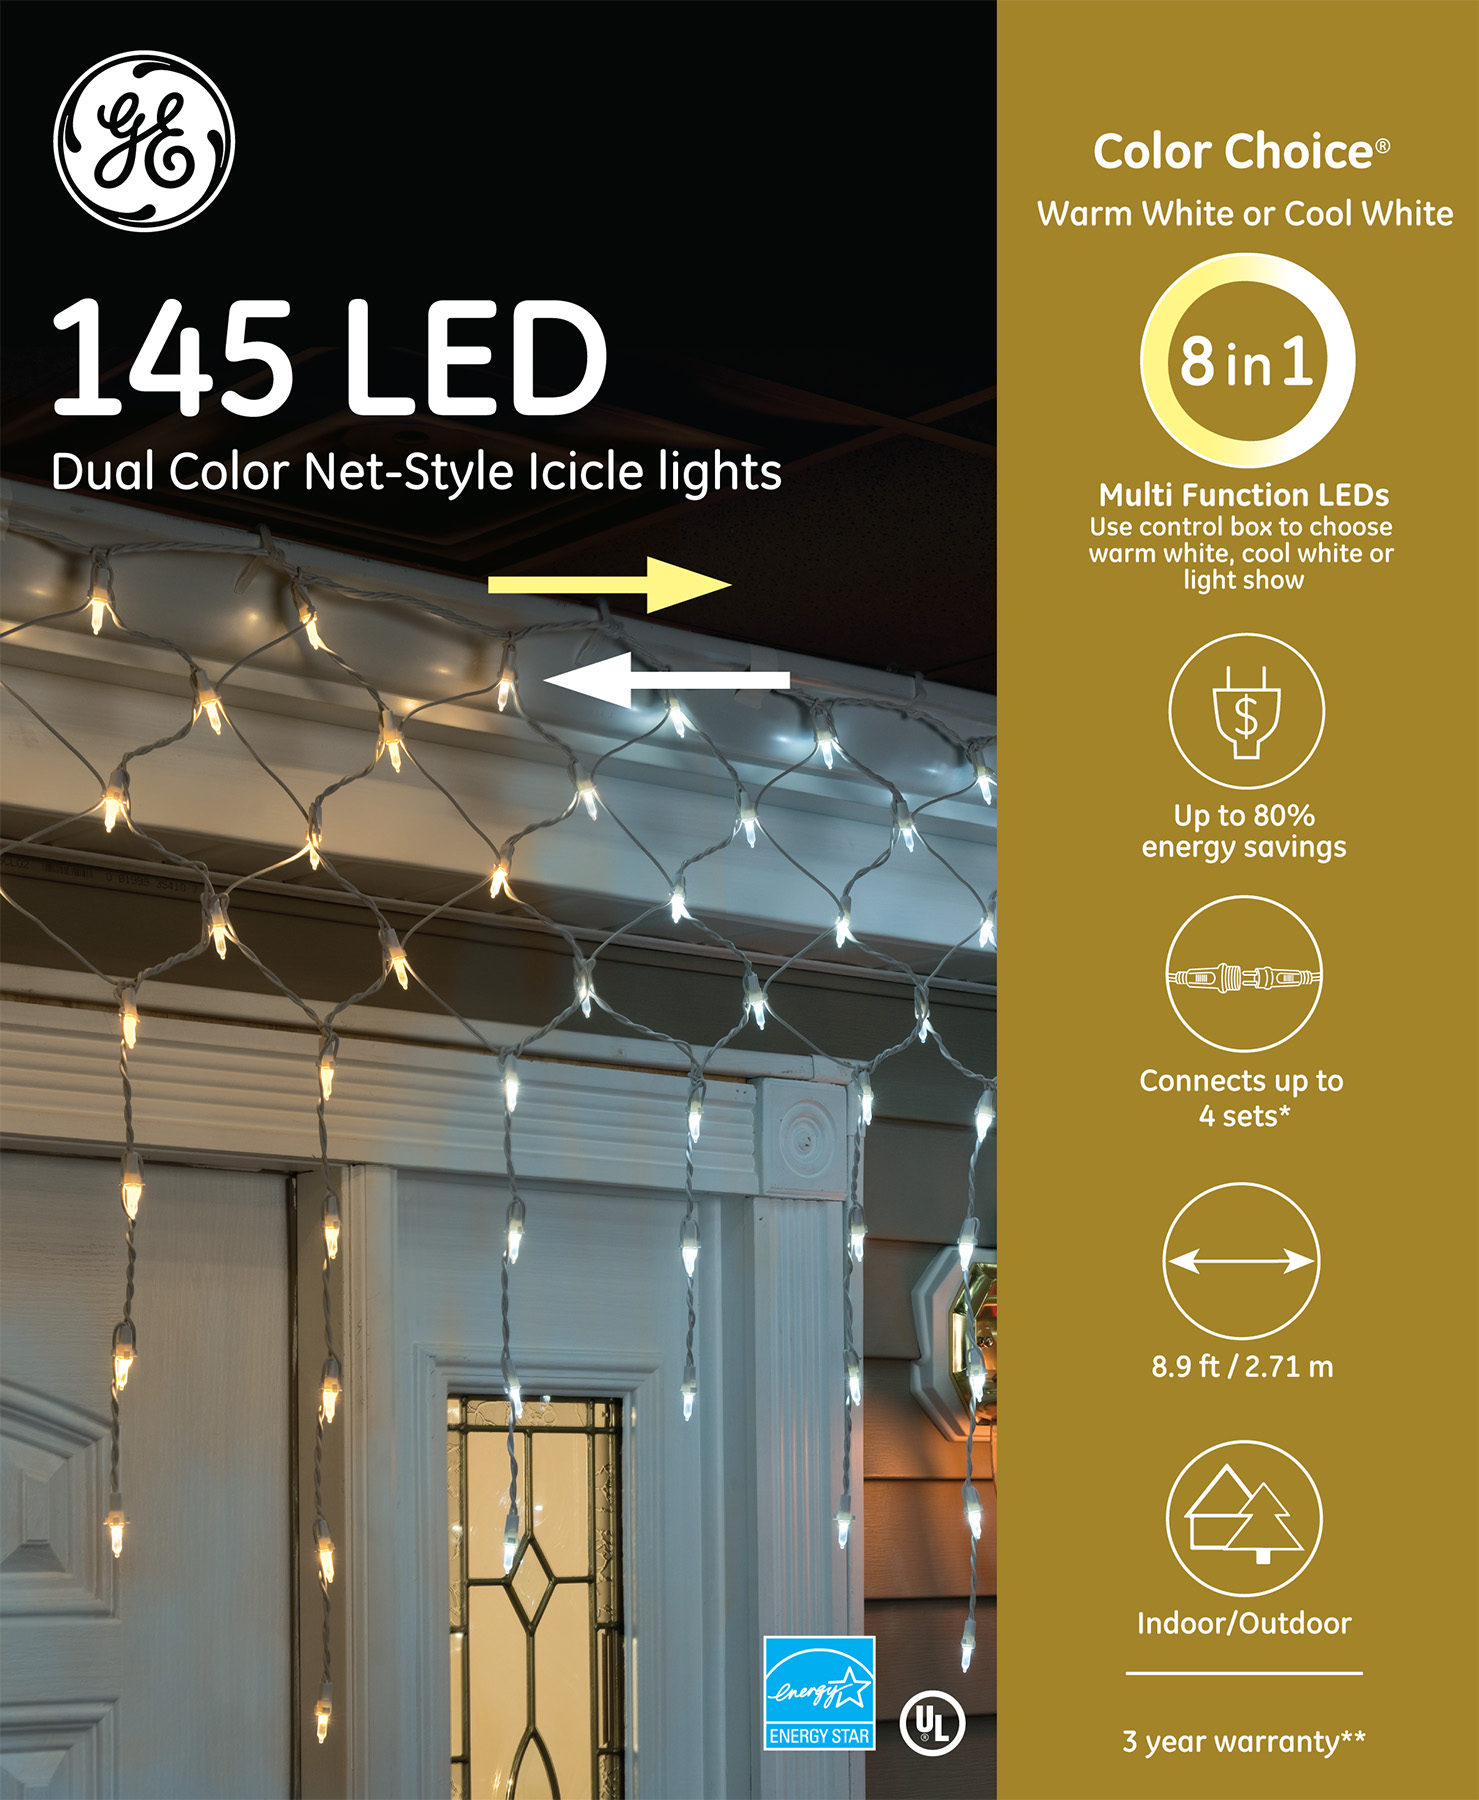 89230 Ge Color Choice 174 Led Net Style Icicle Lights